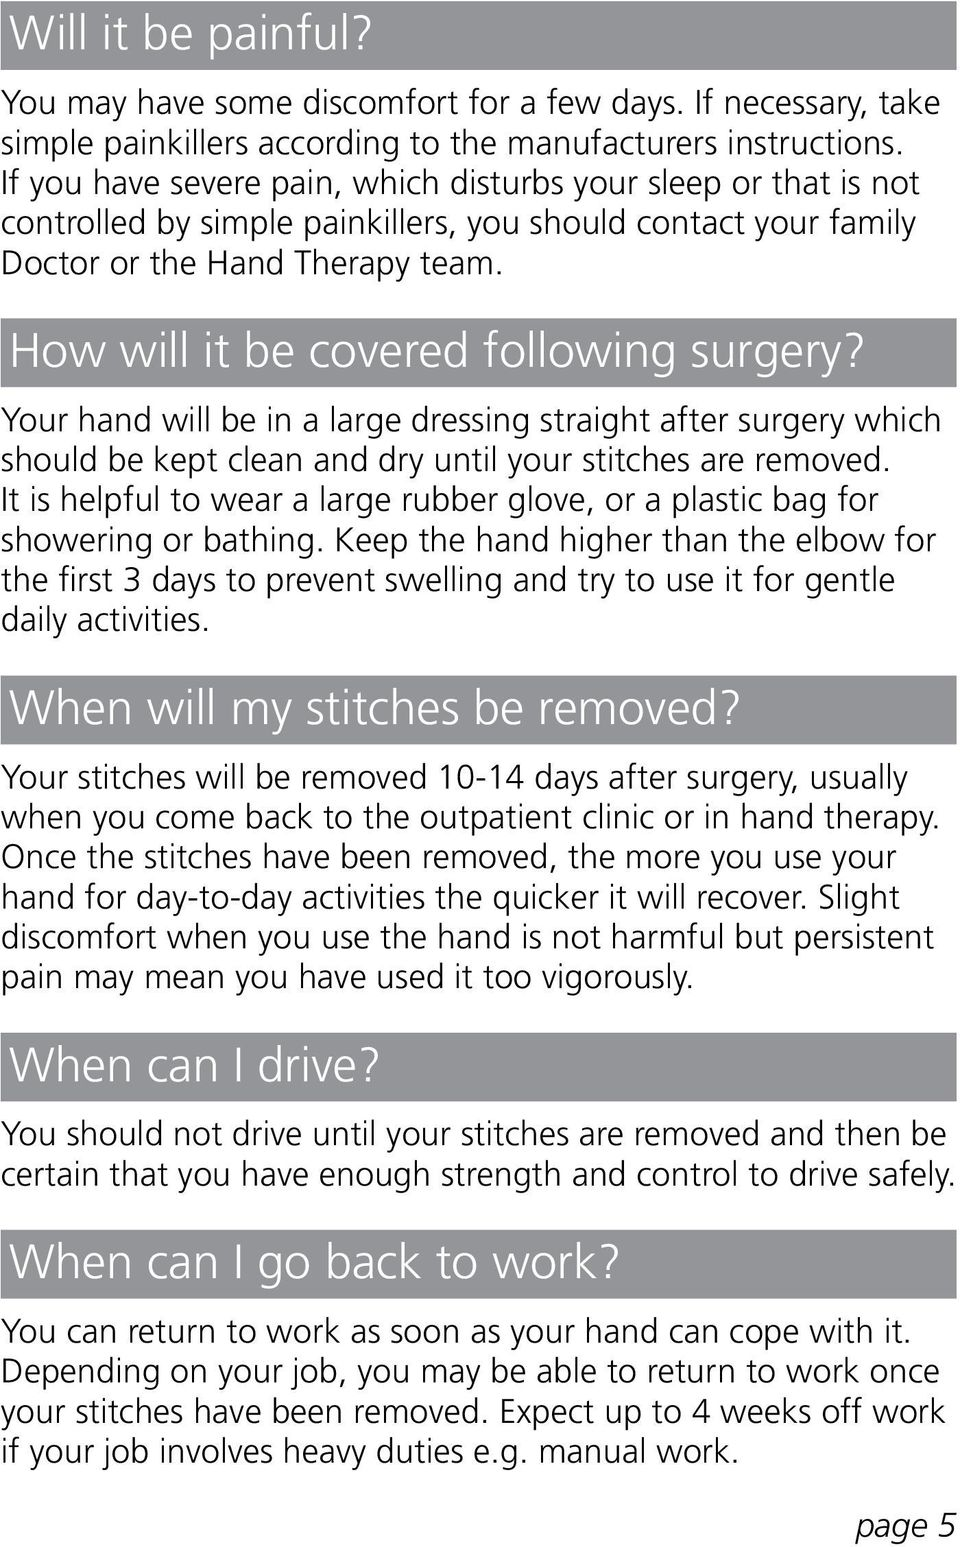 How will it be covered following surgery? Your hand will be in a large dressing straight after surgery which should be kept clean and dry until your stitches are removed.